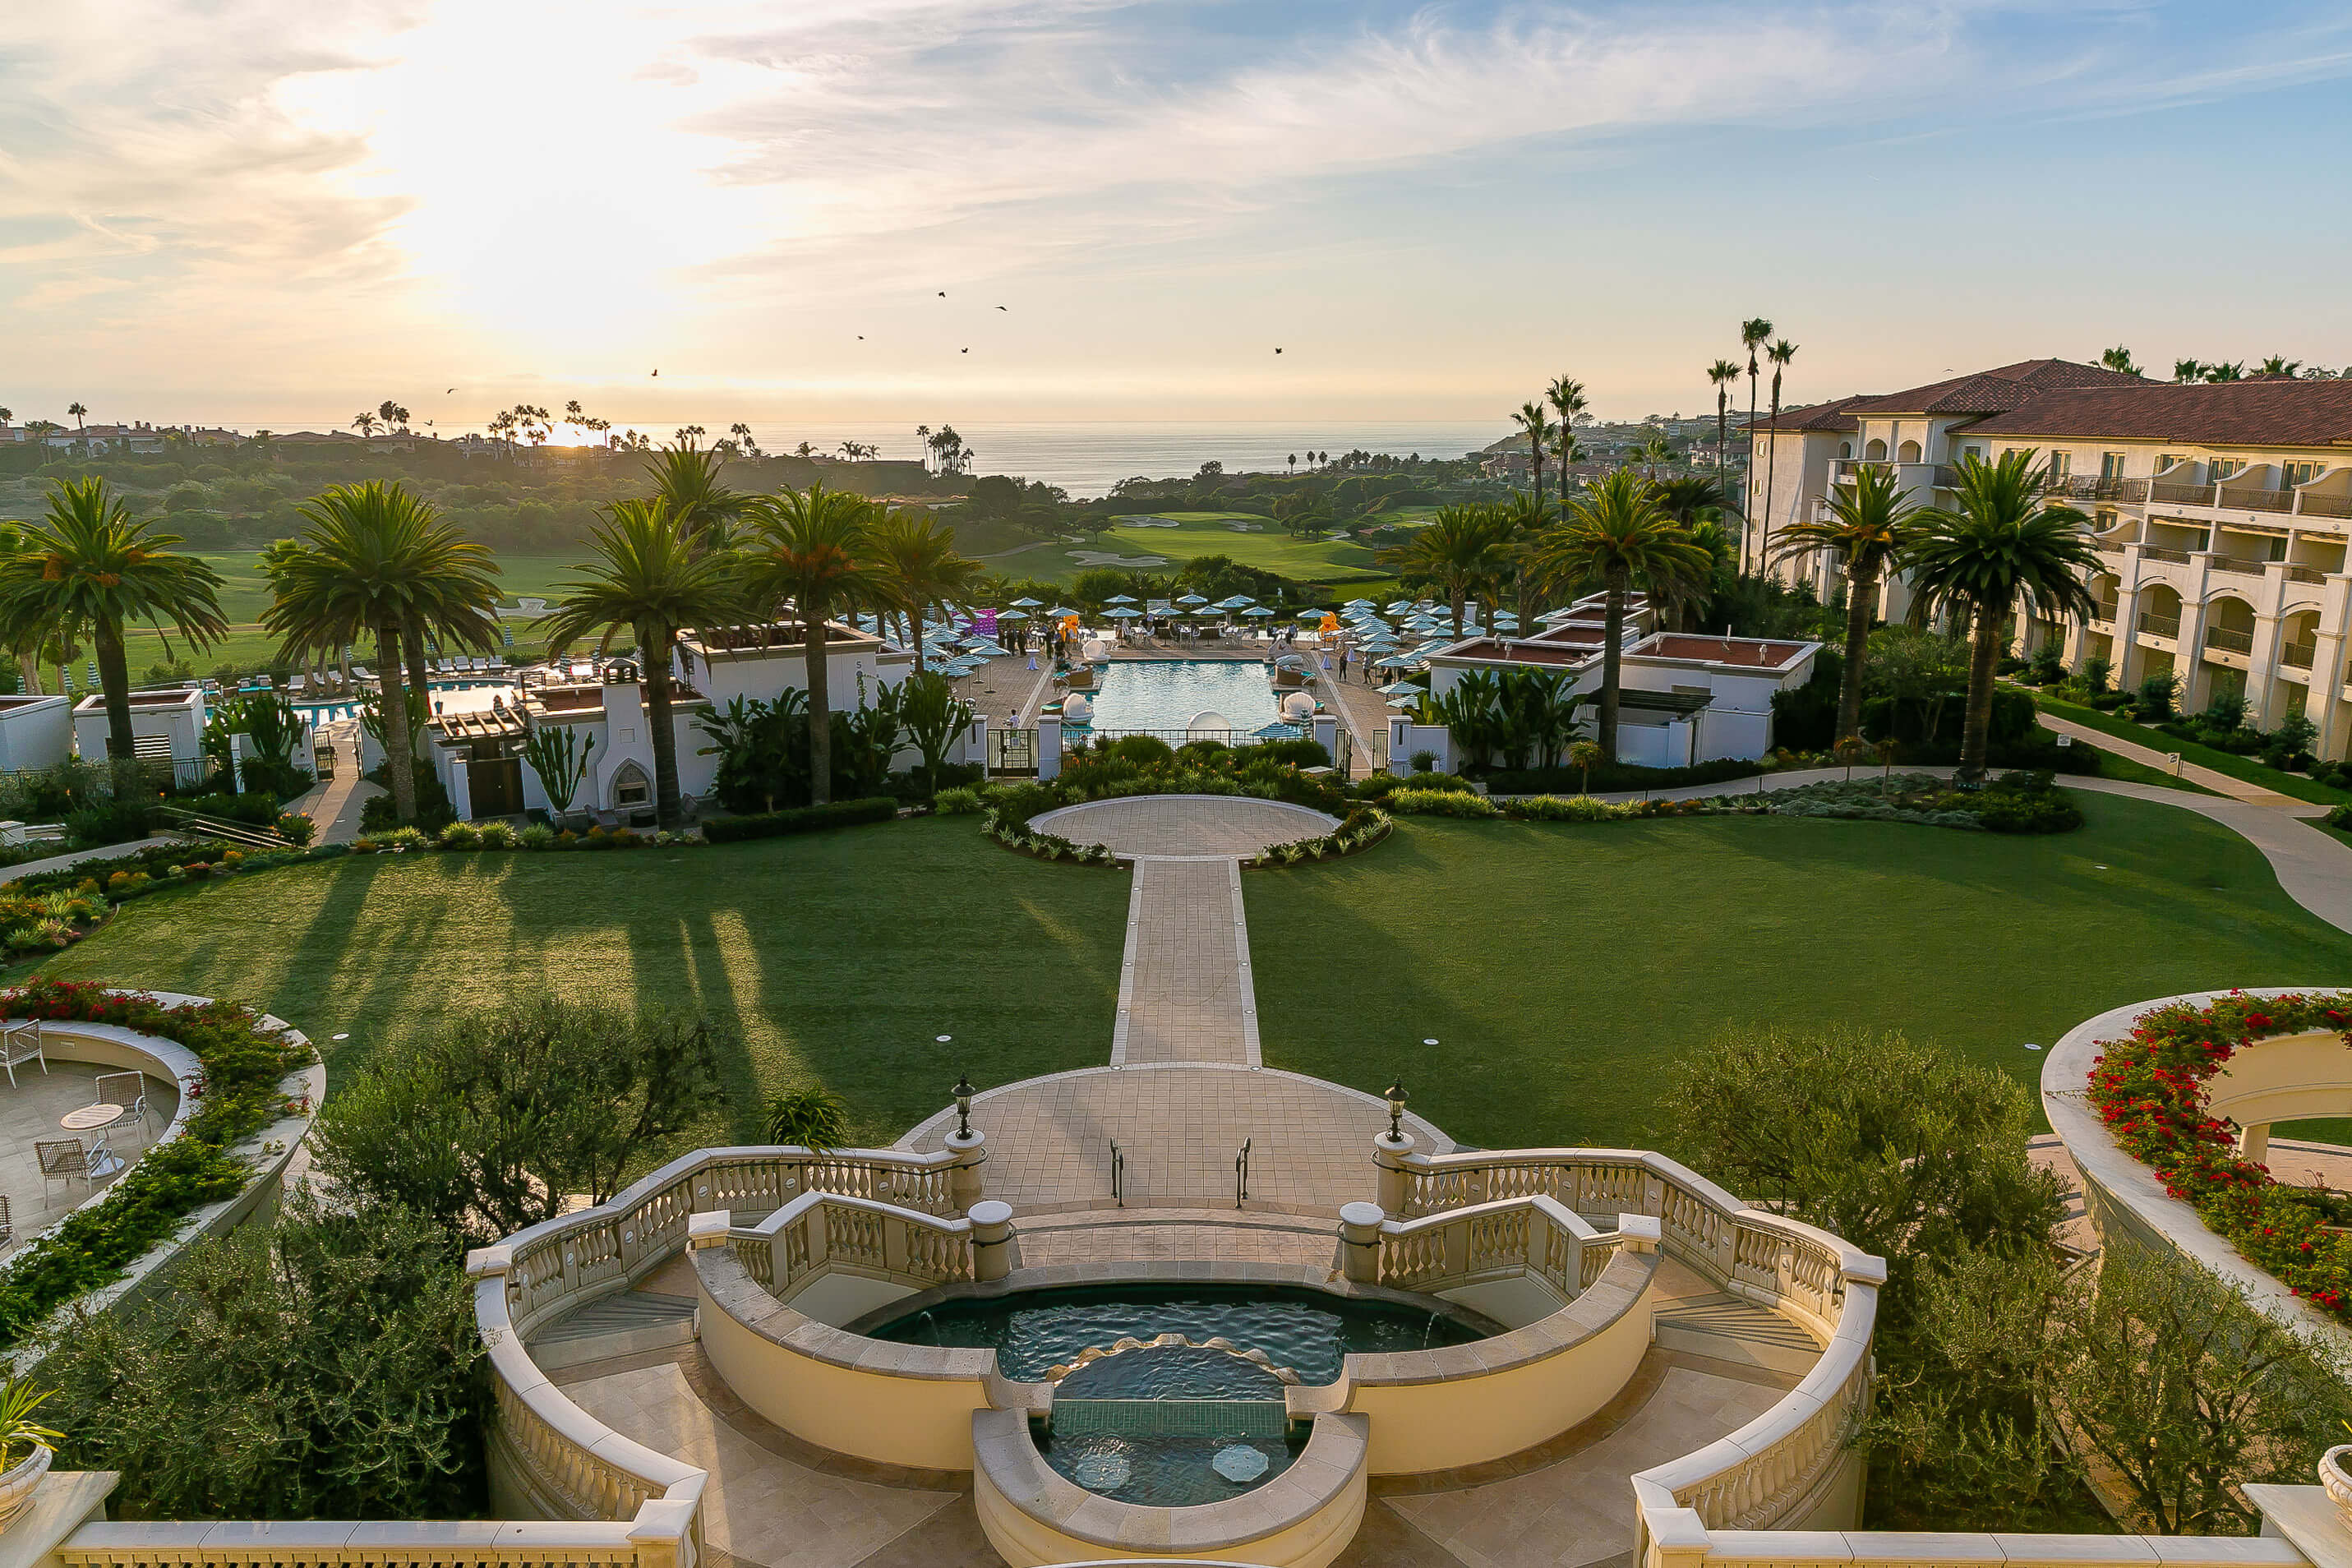 The Influencer Continuum took place across three days at the Monarch Beach Resort in Dana Point, CA.